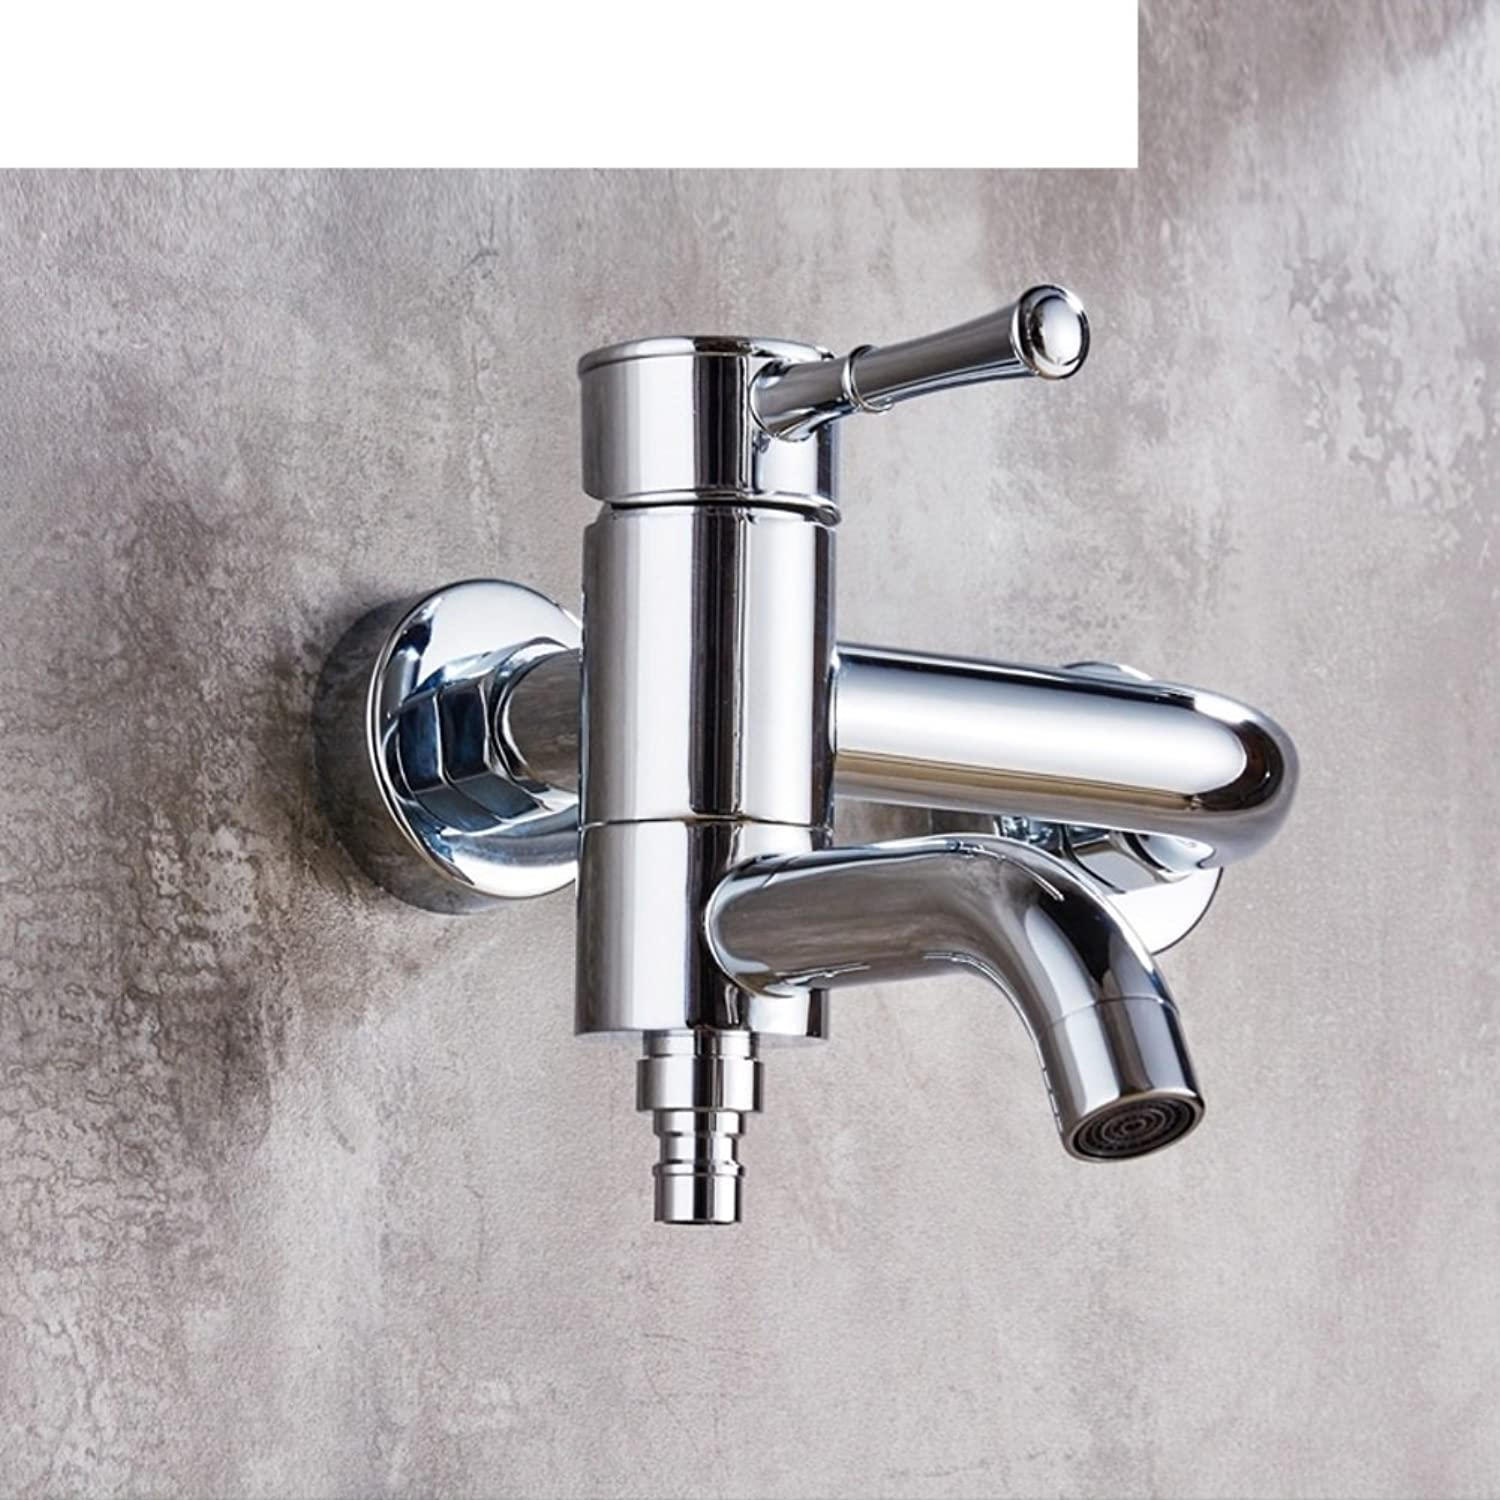 Hot and cold tap bidet Turbo Lance leader Copper hot and cold valves-C